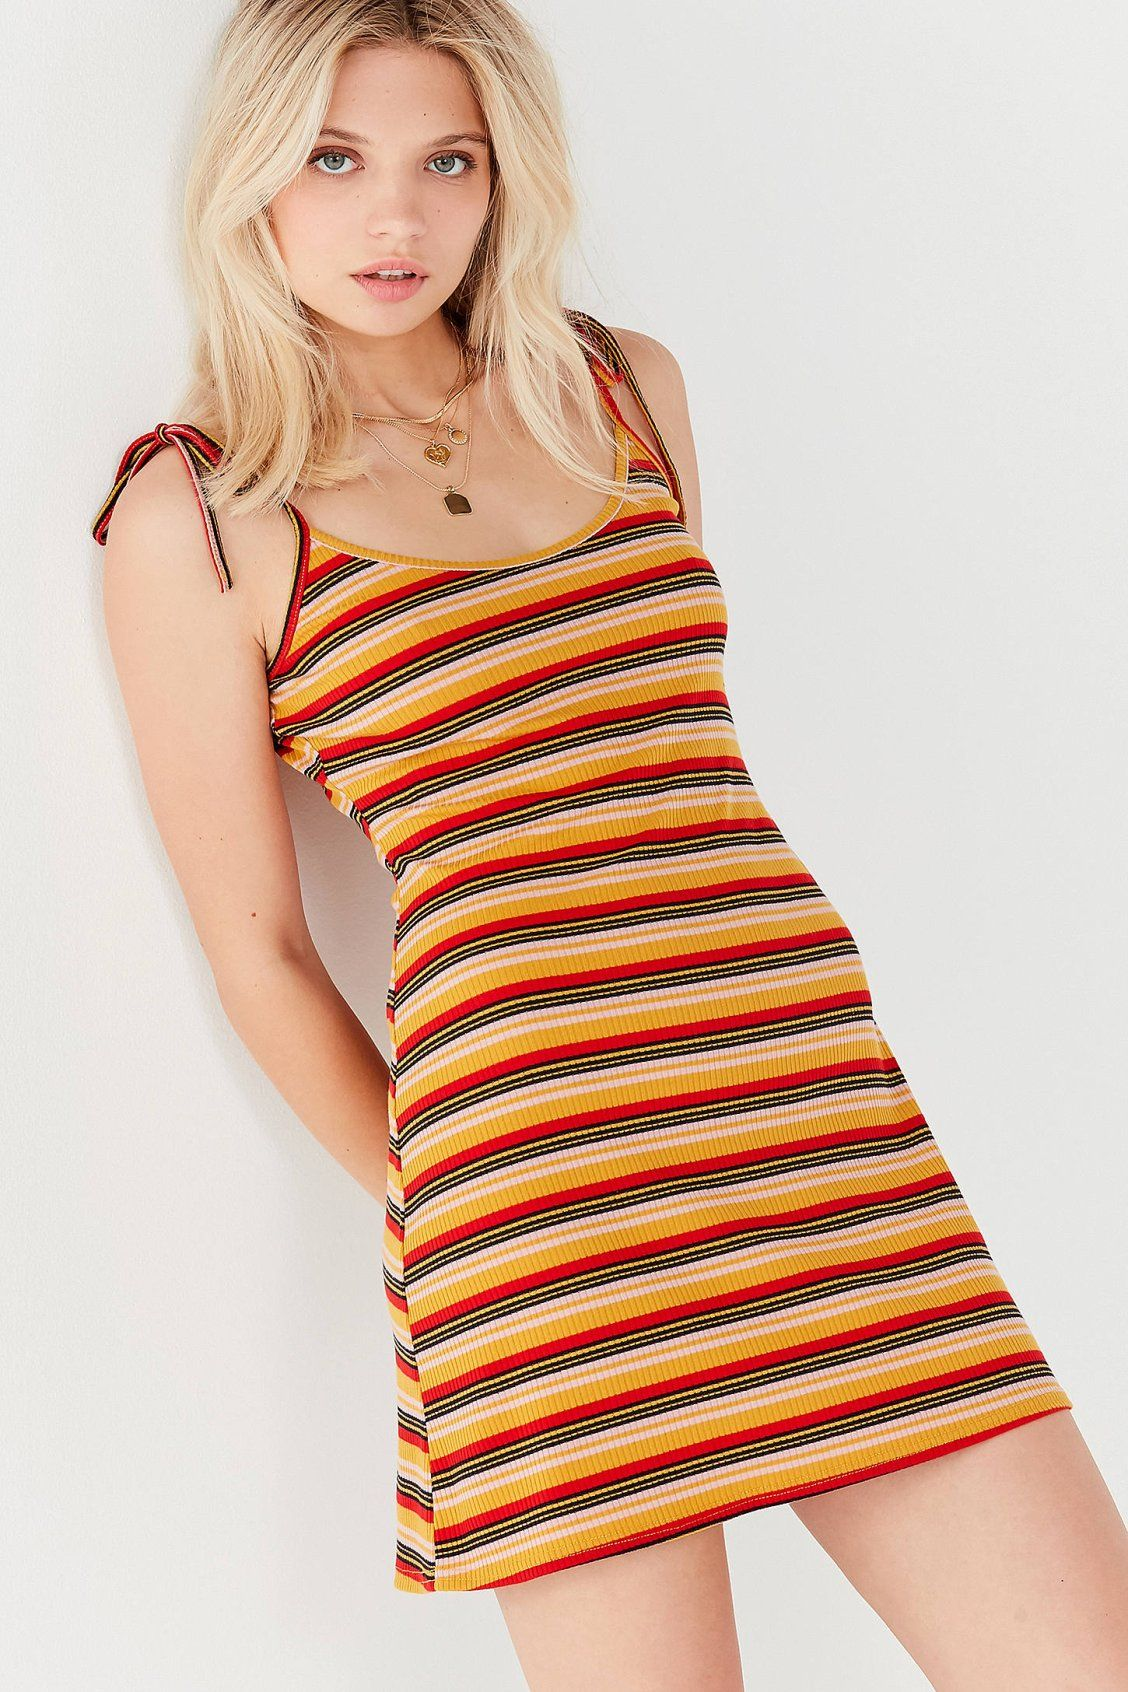 140fac7a50a7 UO Maddie Tie-Strap Striped Dress | New Arrivals | Dresses, Striped ...